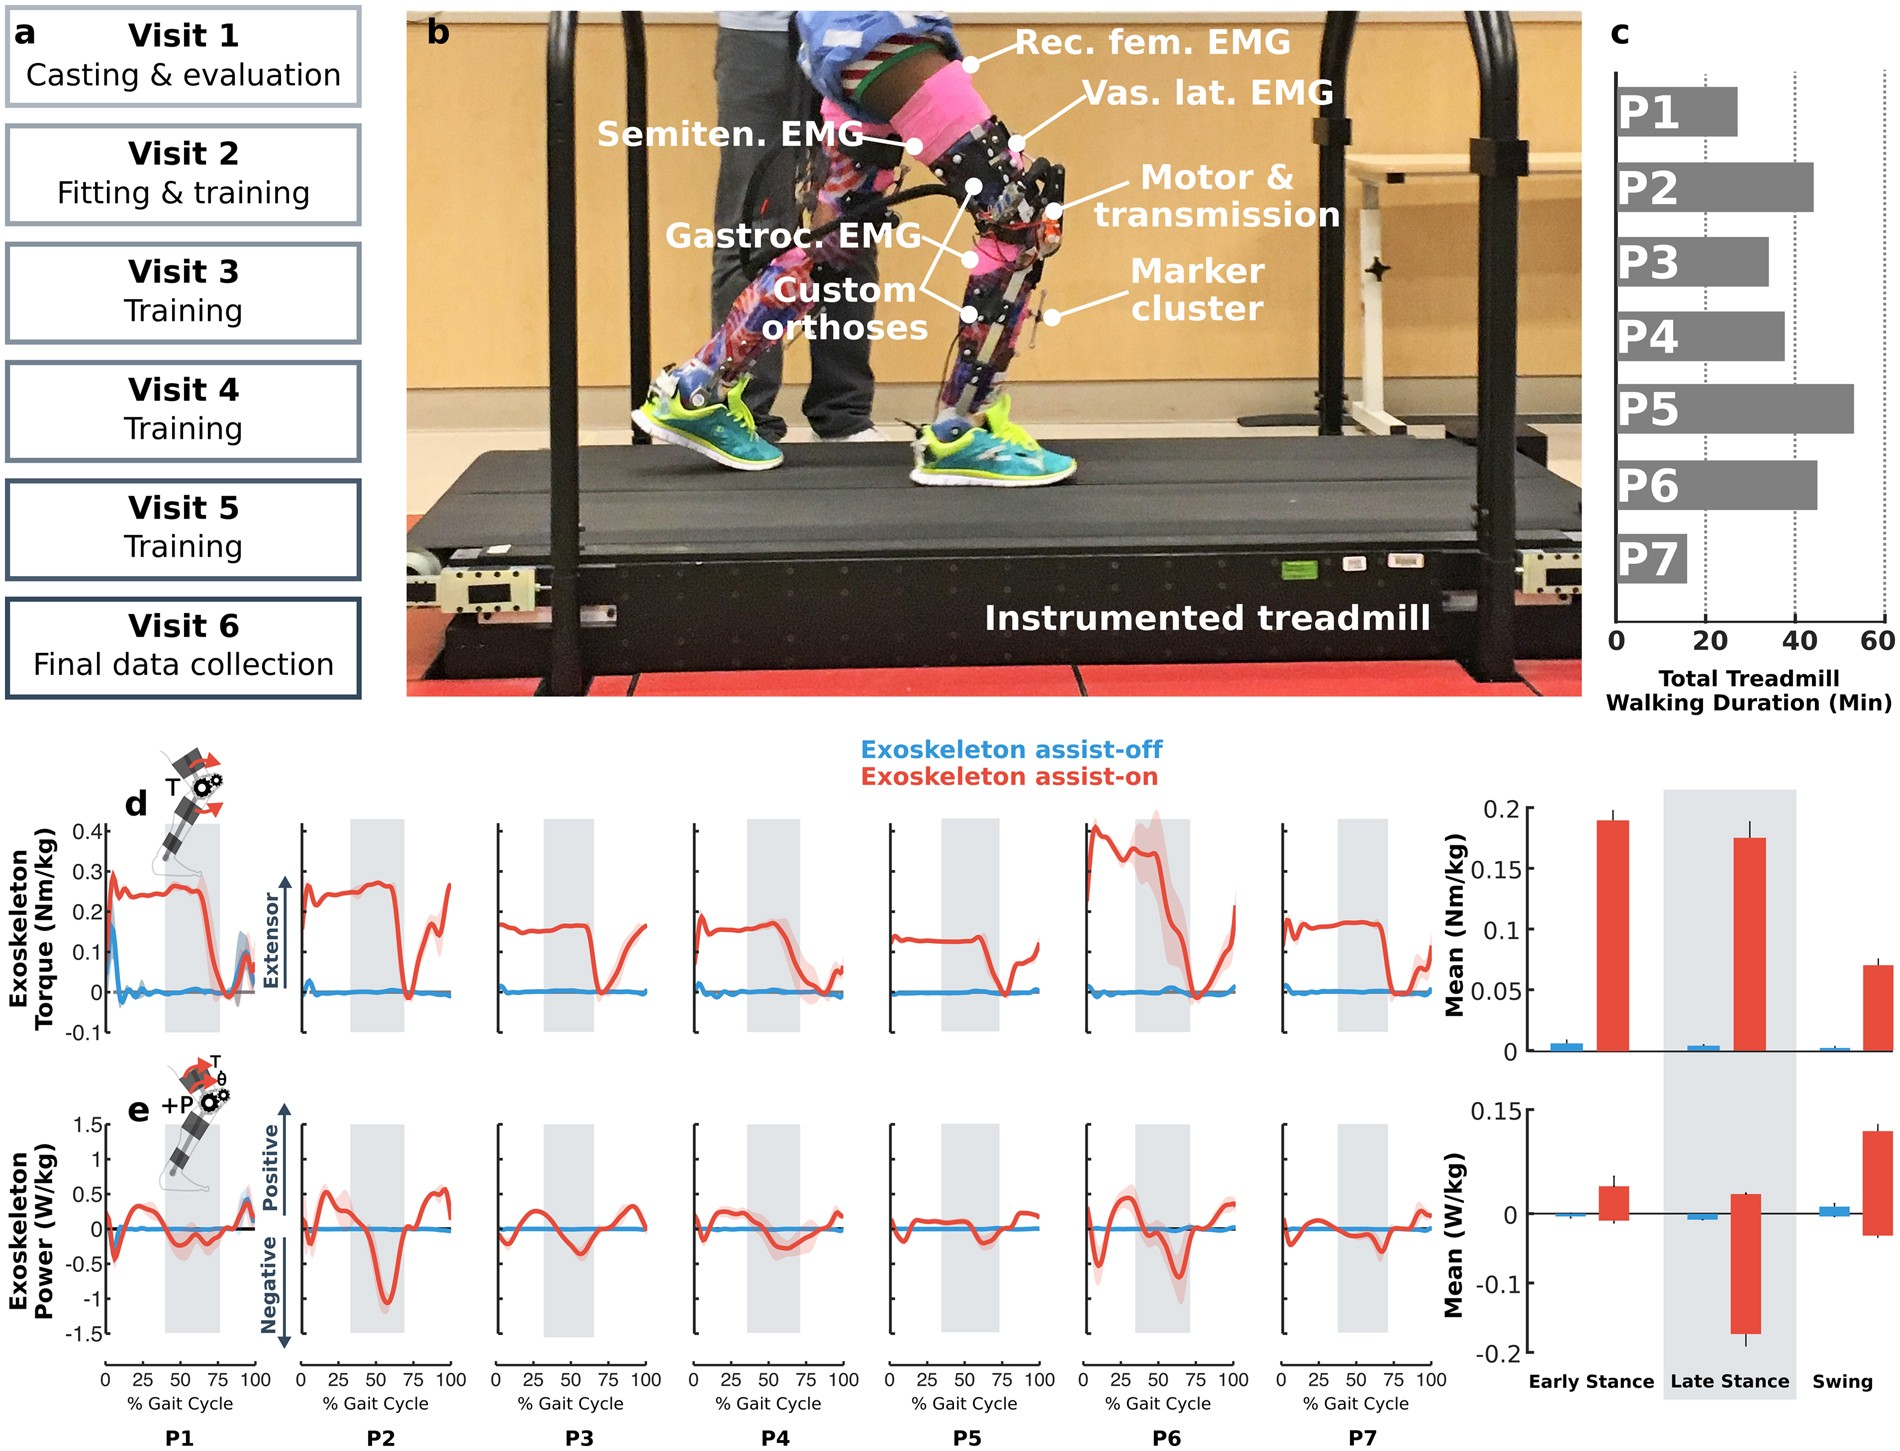 The Effects Of Exoskeleton Assisted Knee Extension On Lower Electricity It Walks Kids Through Nature And Extremity Gait Kinematics Kinetics Muscle Activity In Children With Cerebral Palsy